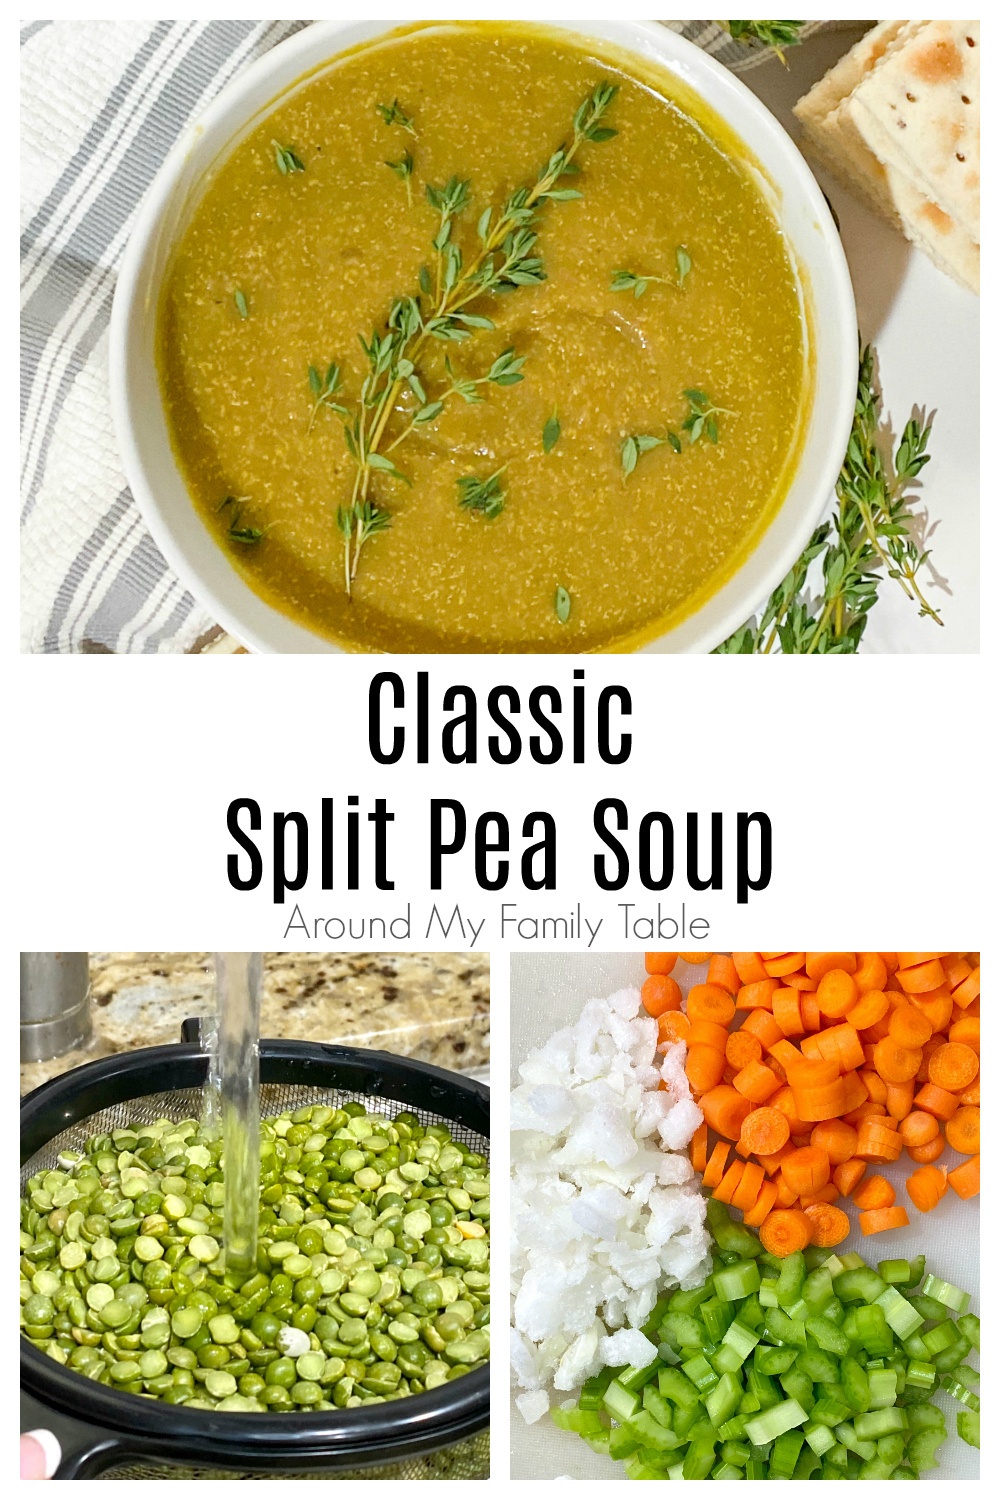 Delicious and simple Classic Split Pea Soup made with dried peas and a leftover ham bone screams comfort food. It's perfect for a cold winter day! via @slingmama